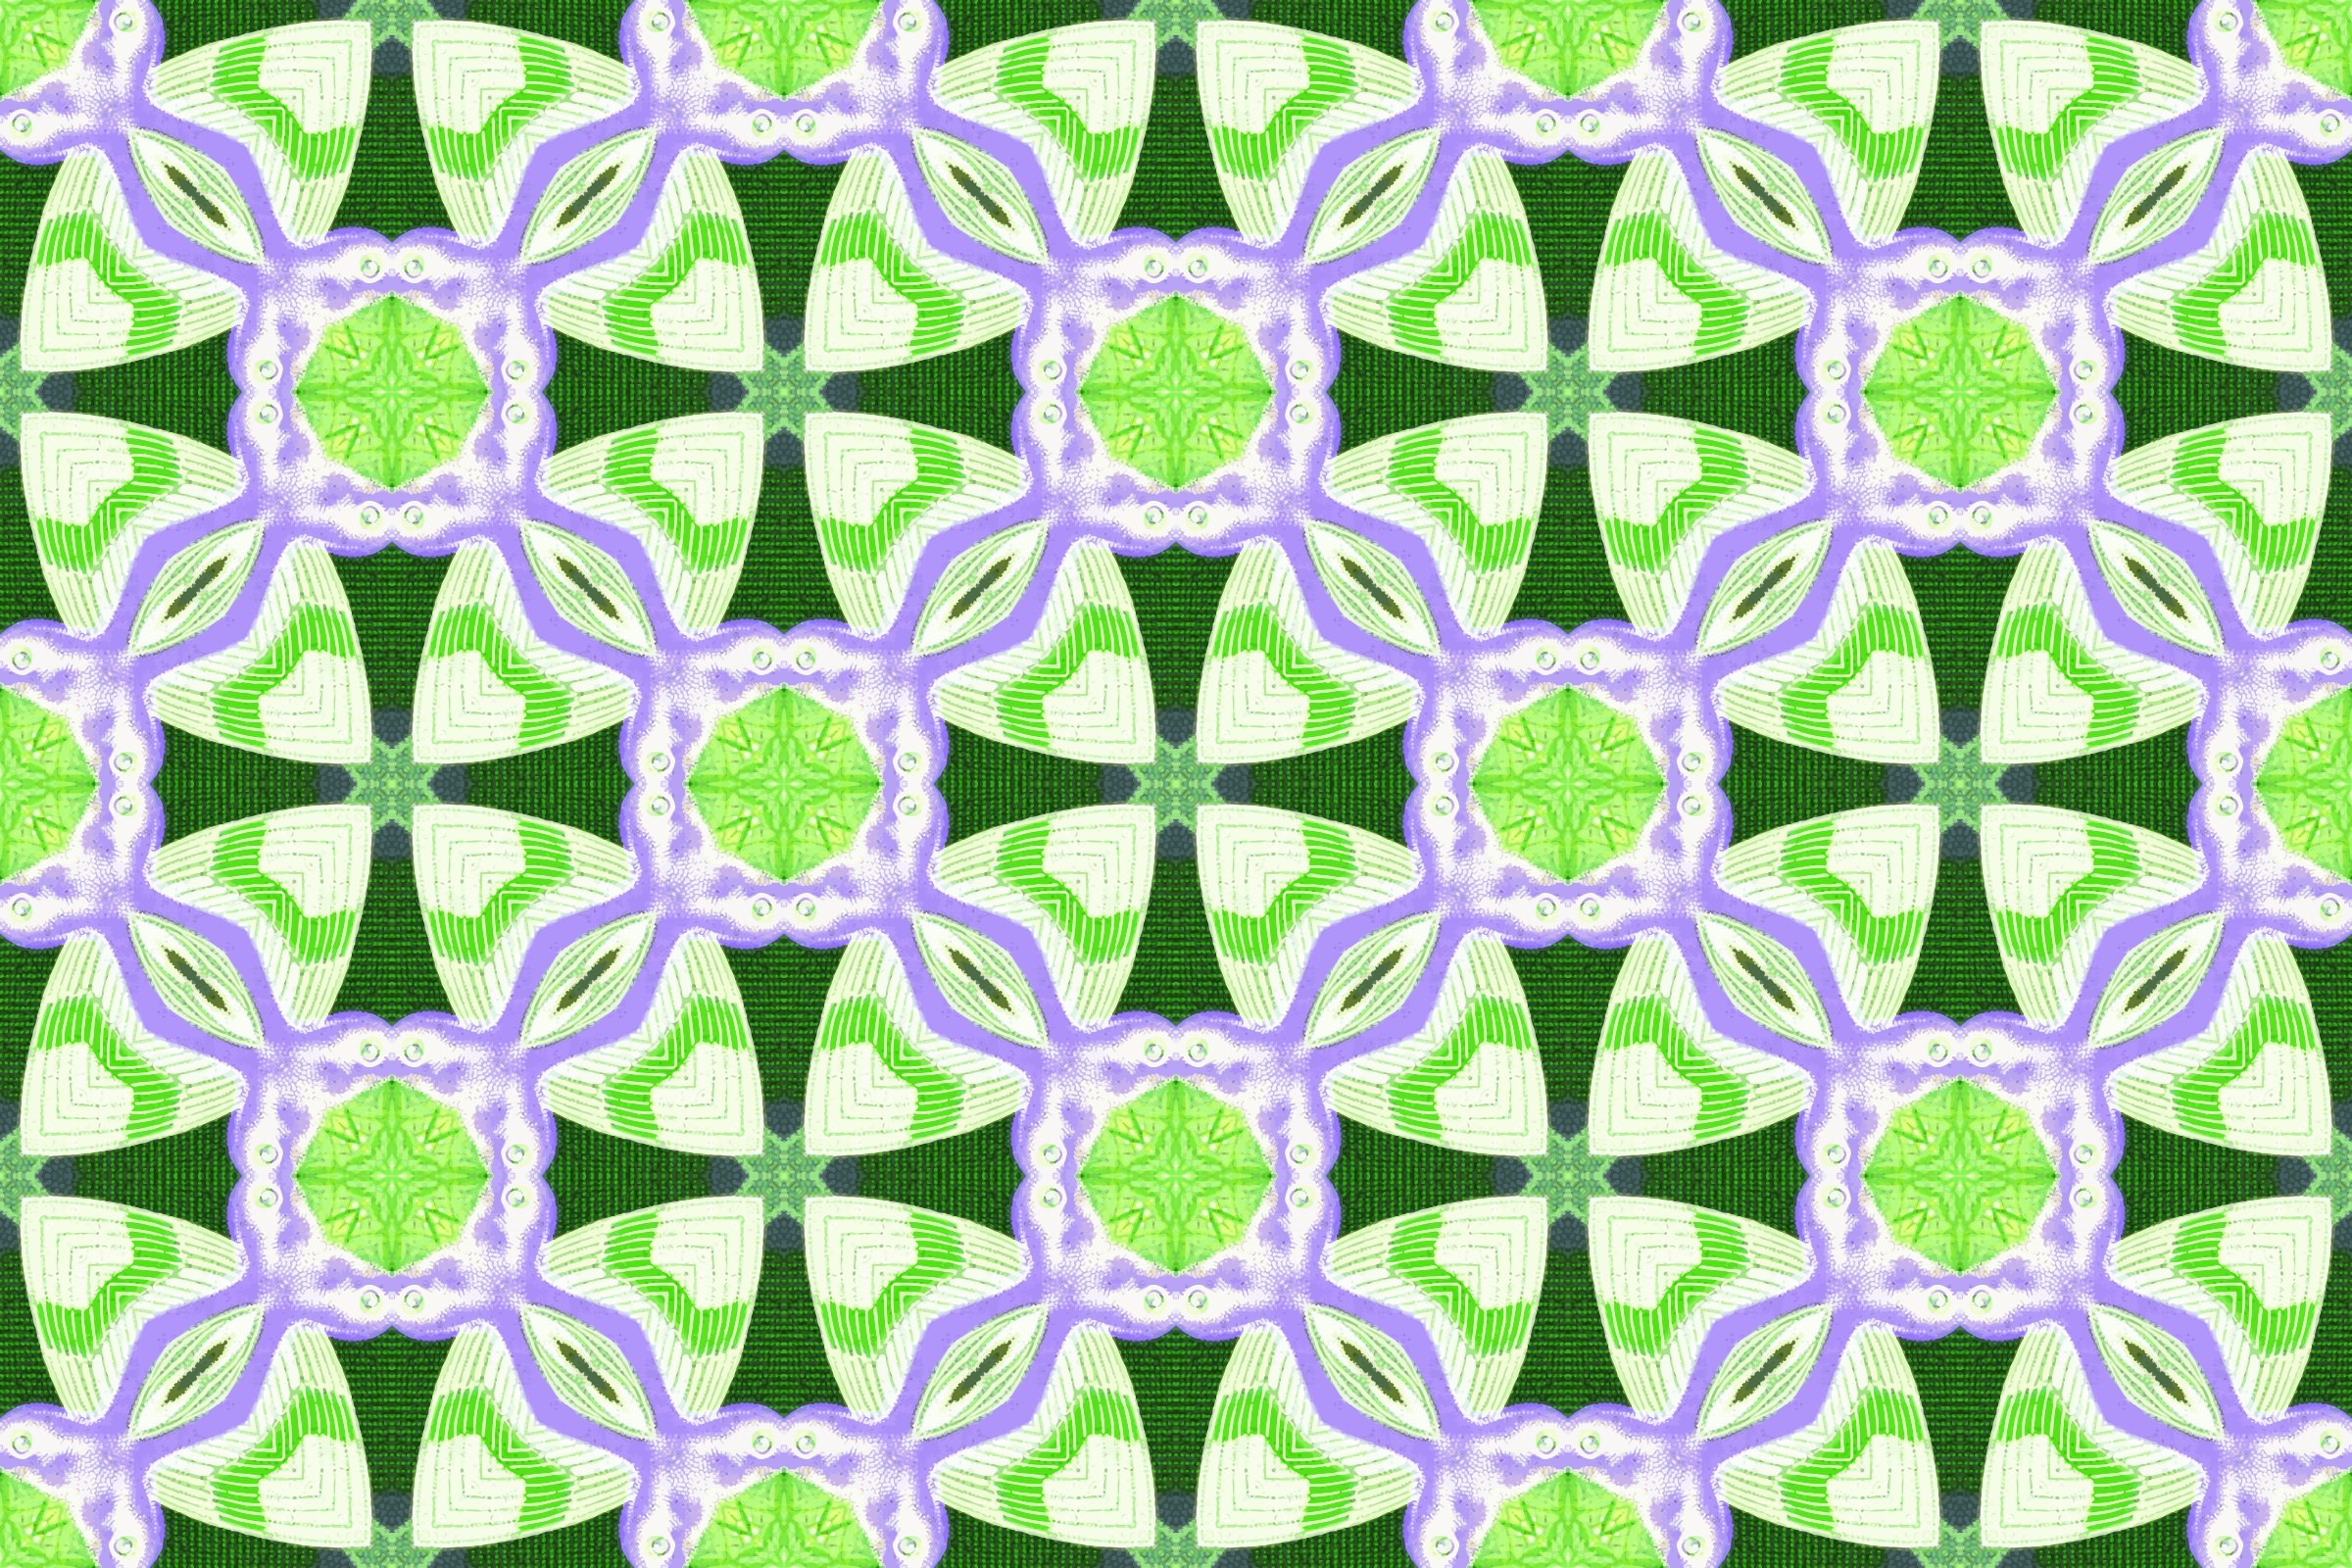 Background pattern 203 (colour 2) by Firkin